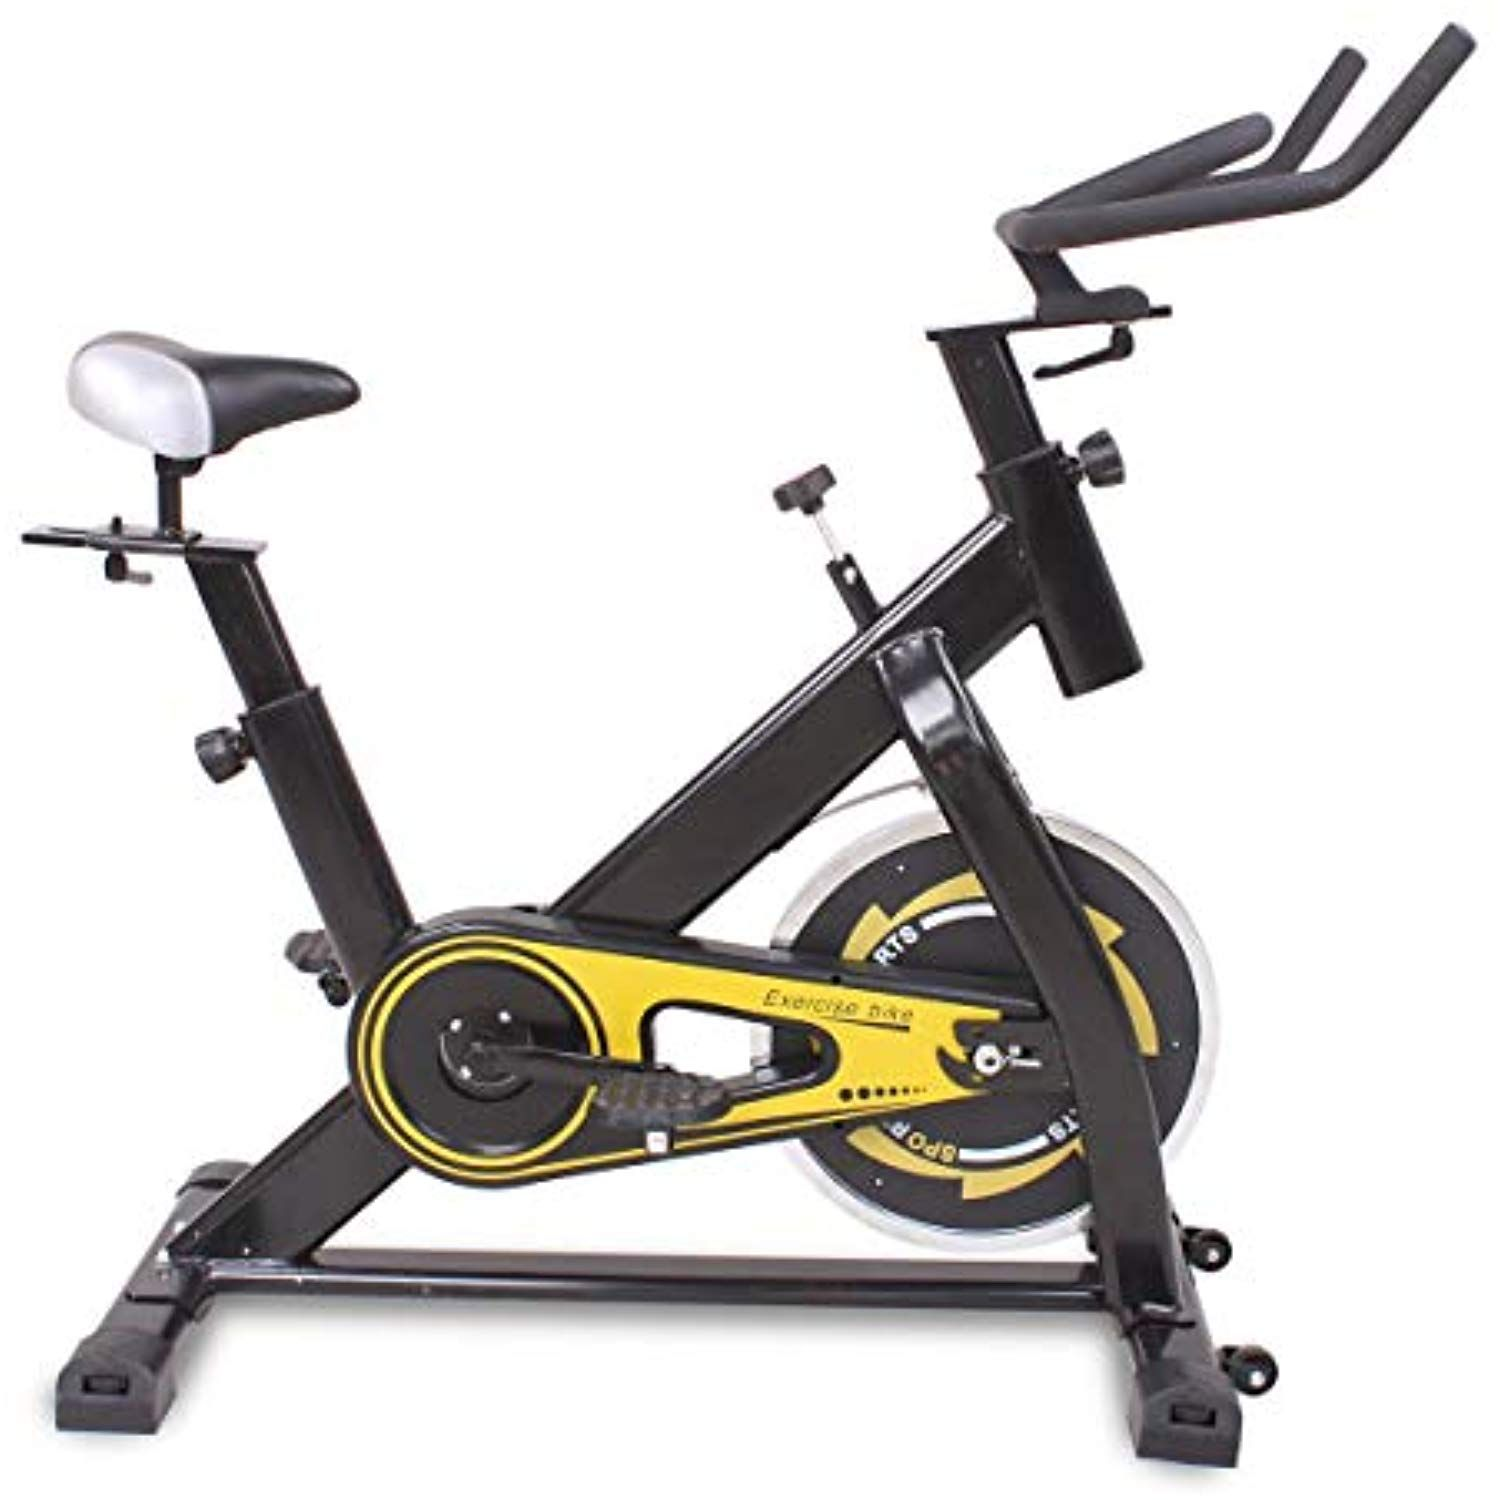 Huldaqueen Stationary Exercise Bicycle Trainer Indoor Bike Cycling